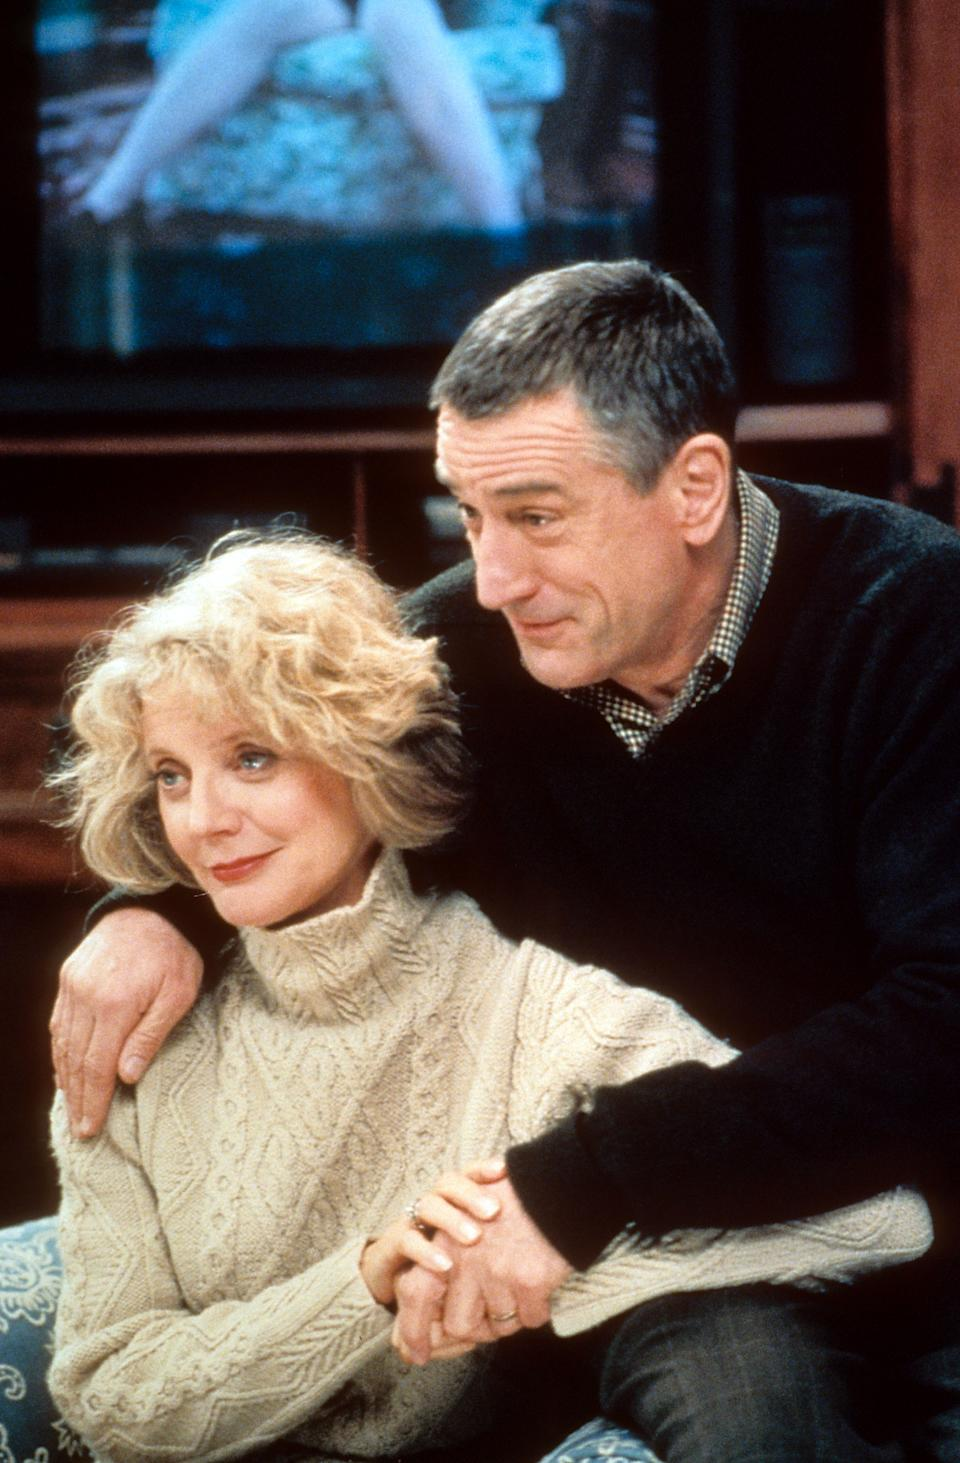 Blythe Danner sitting with Robert De Niro in a scene from the film 'Meet The Parents', 2000. (Photo by Universal/Getty Images)